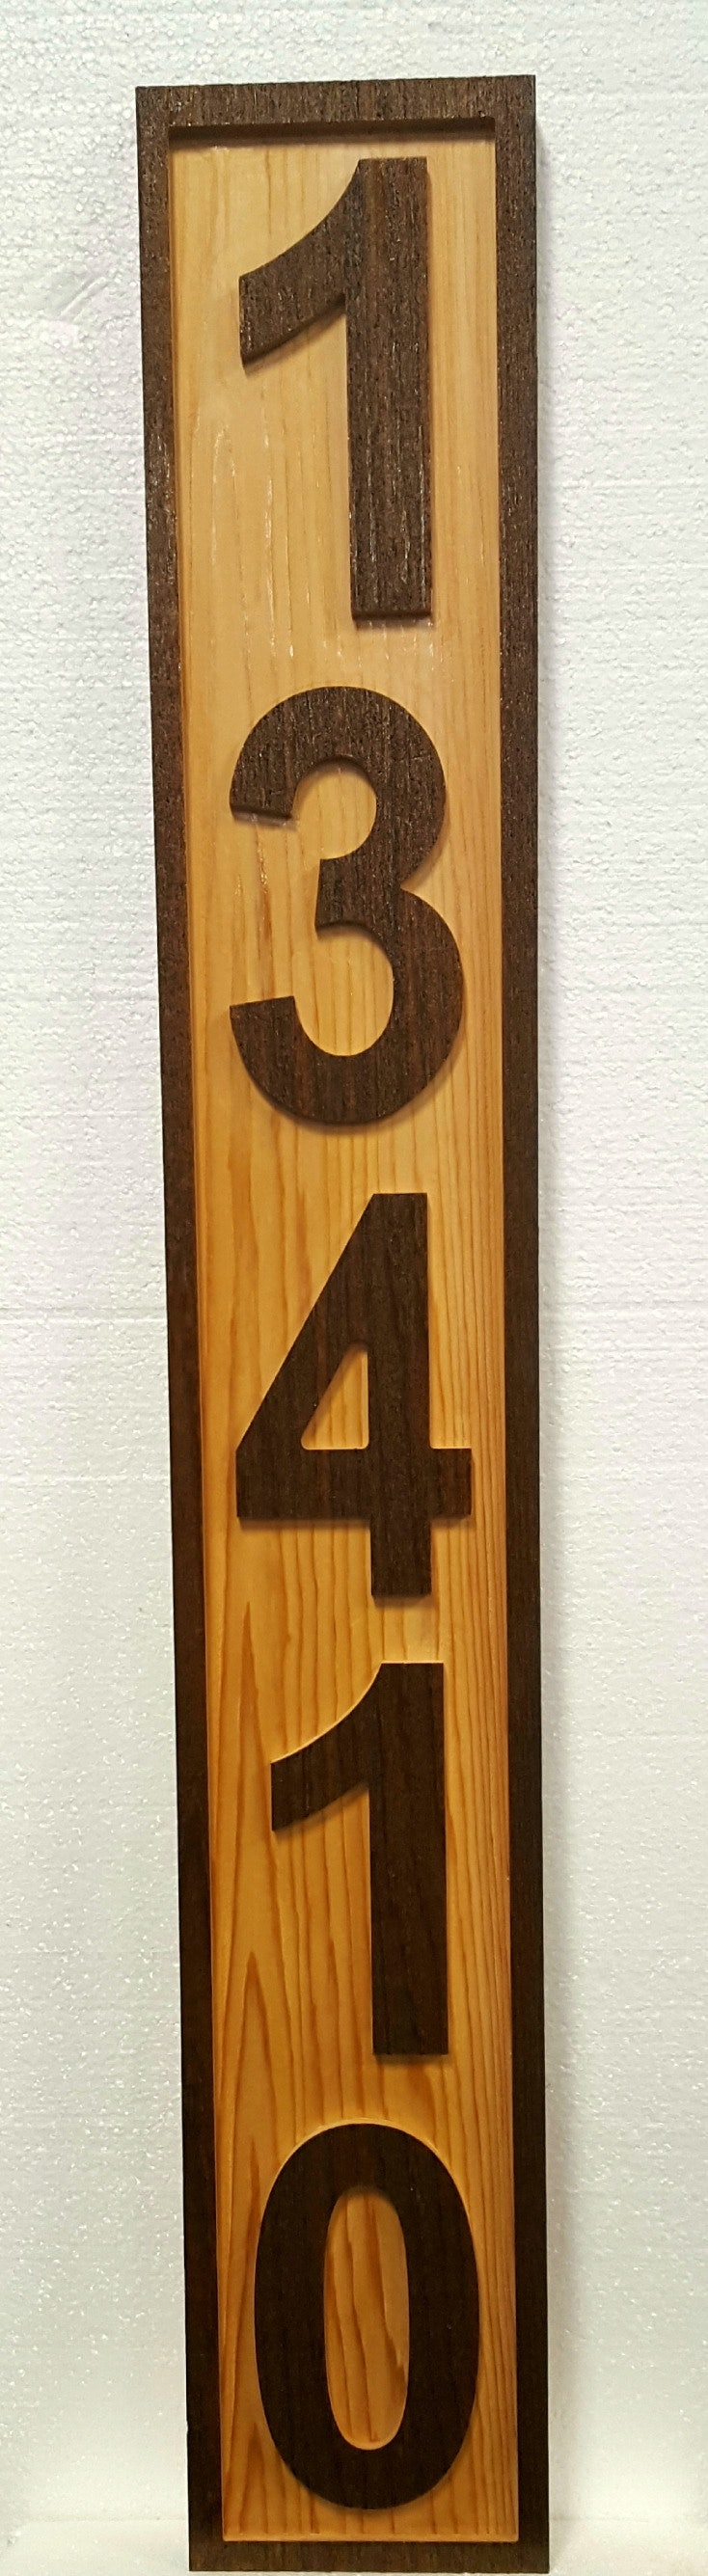 Custom House Number Sign - Three Numbers